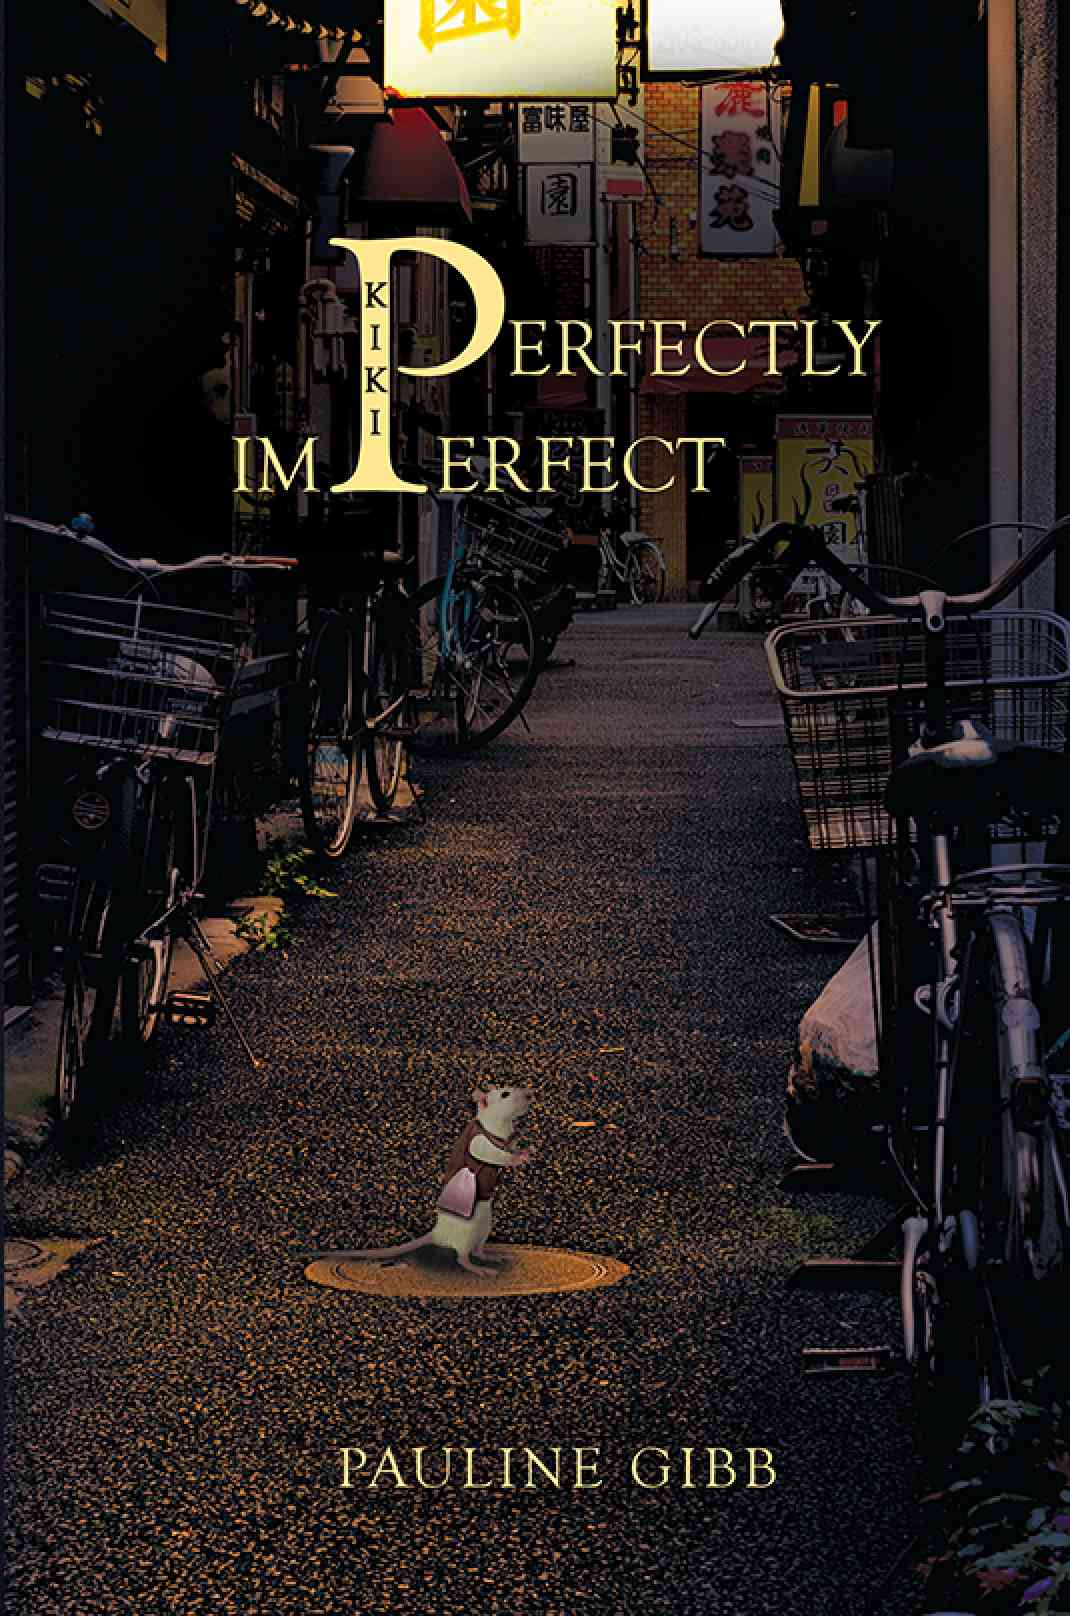 Kiki - Perfectly Imperfect